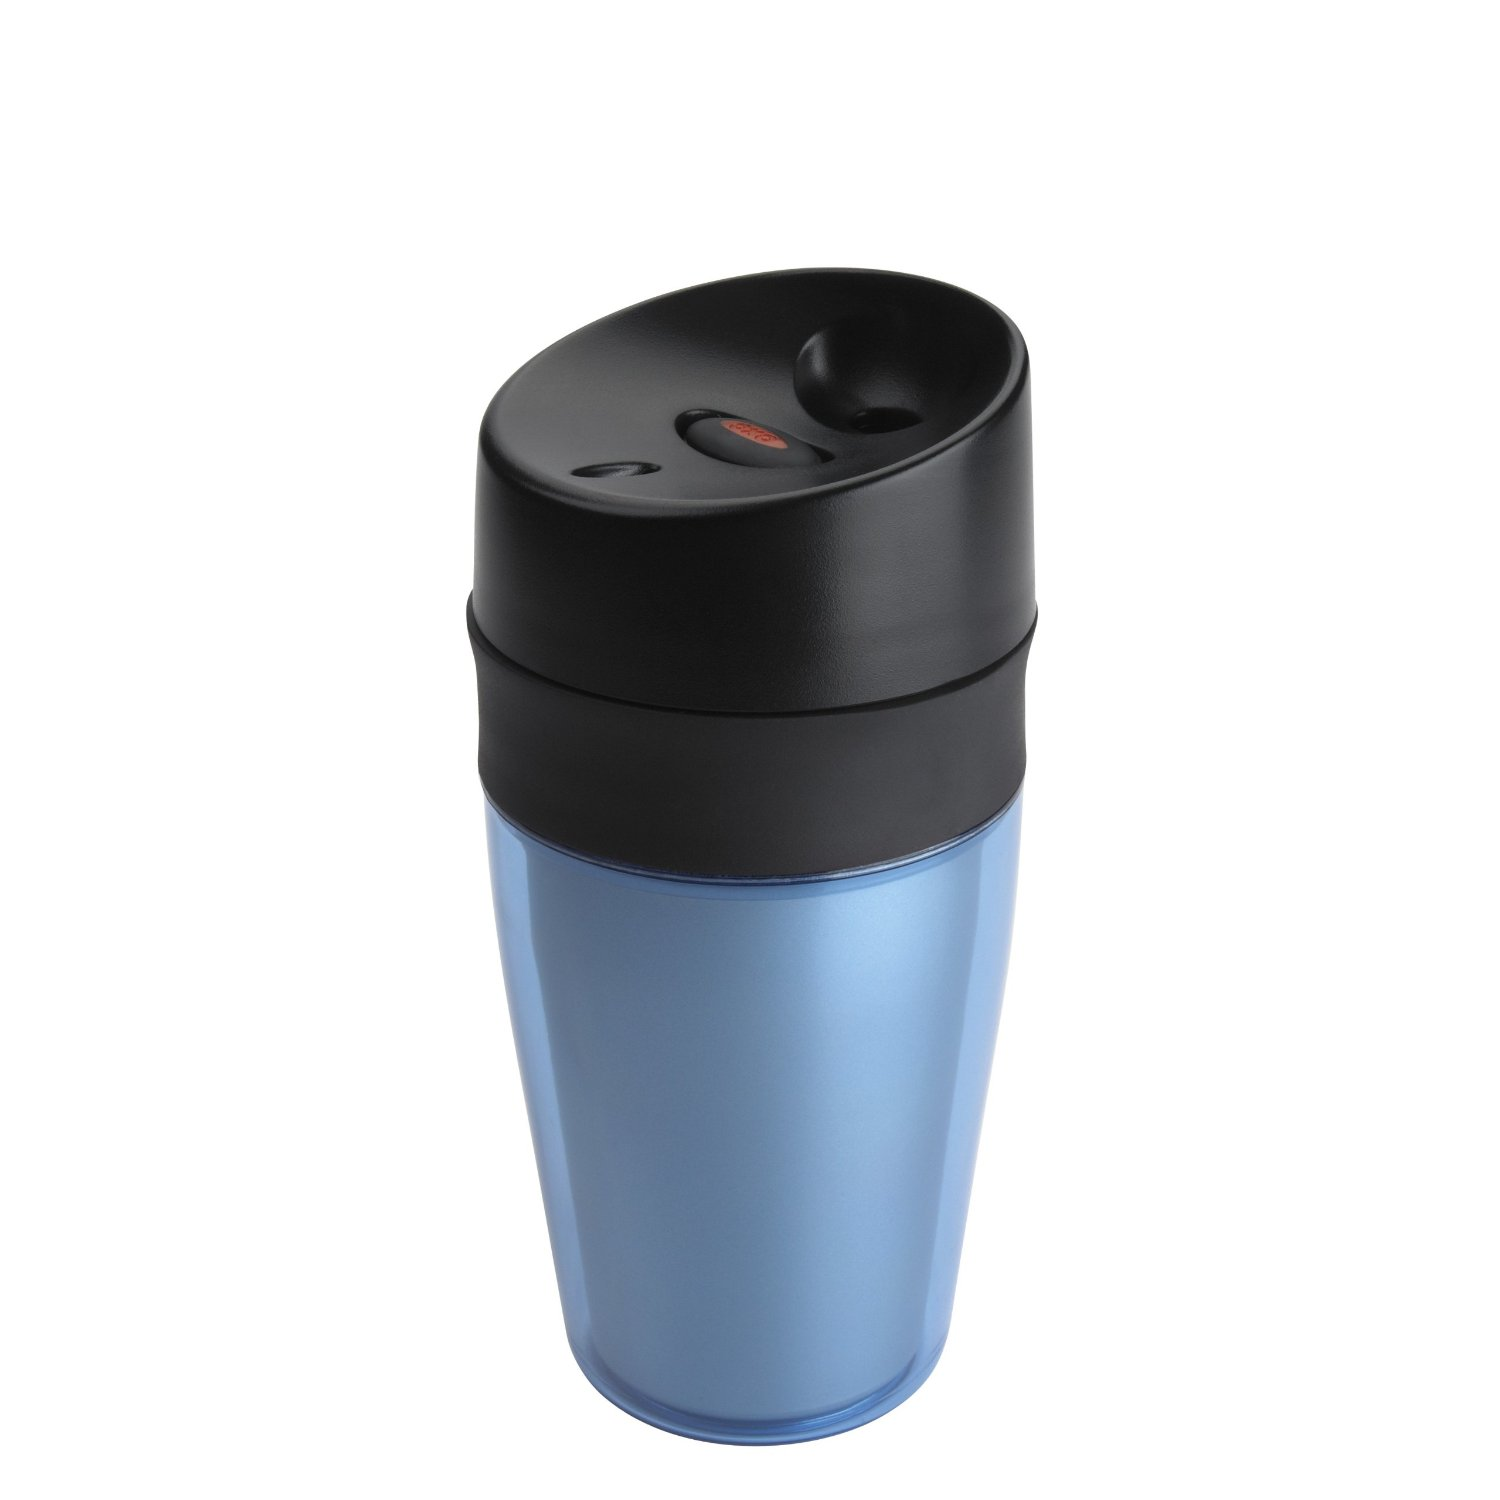 The 10 Ounce Travel Mug Short Enough For One Cup Coffee